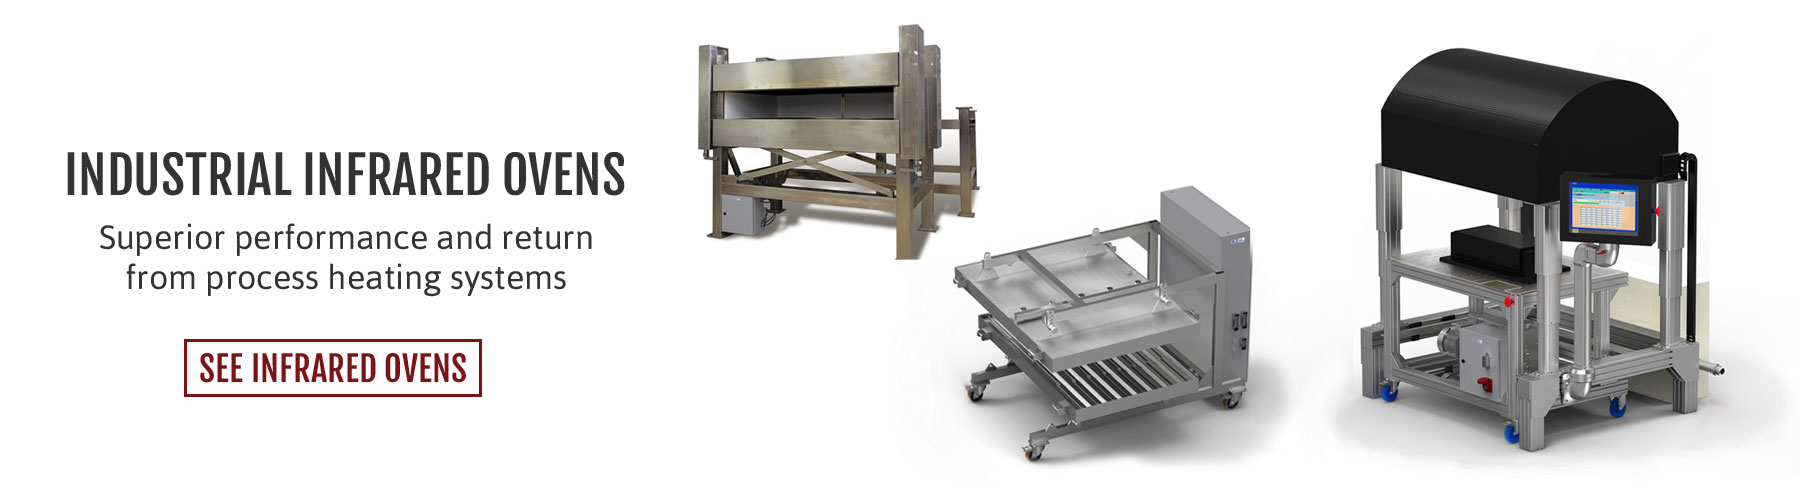 Industrial Infrared Ovens